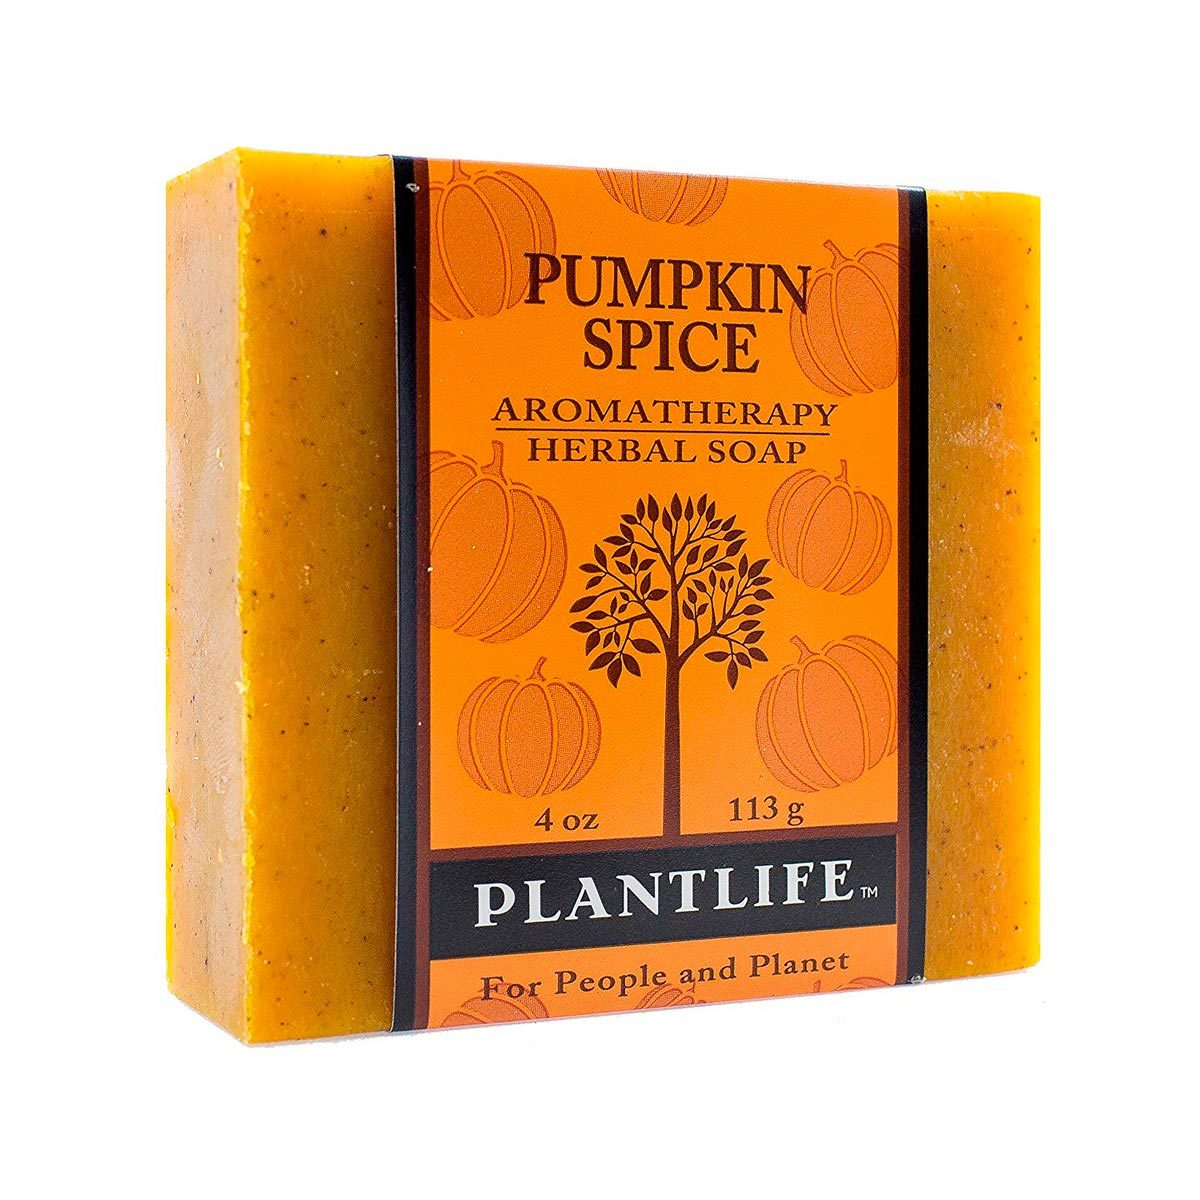 pumpkin spice herbal soap